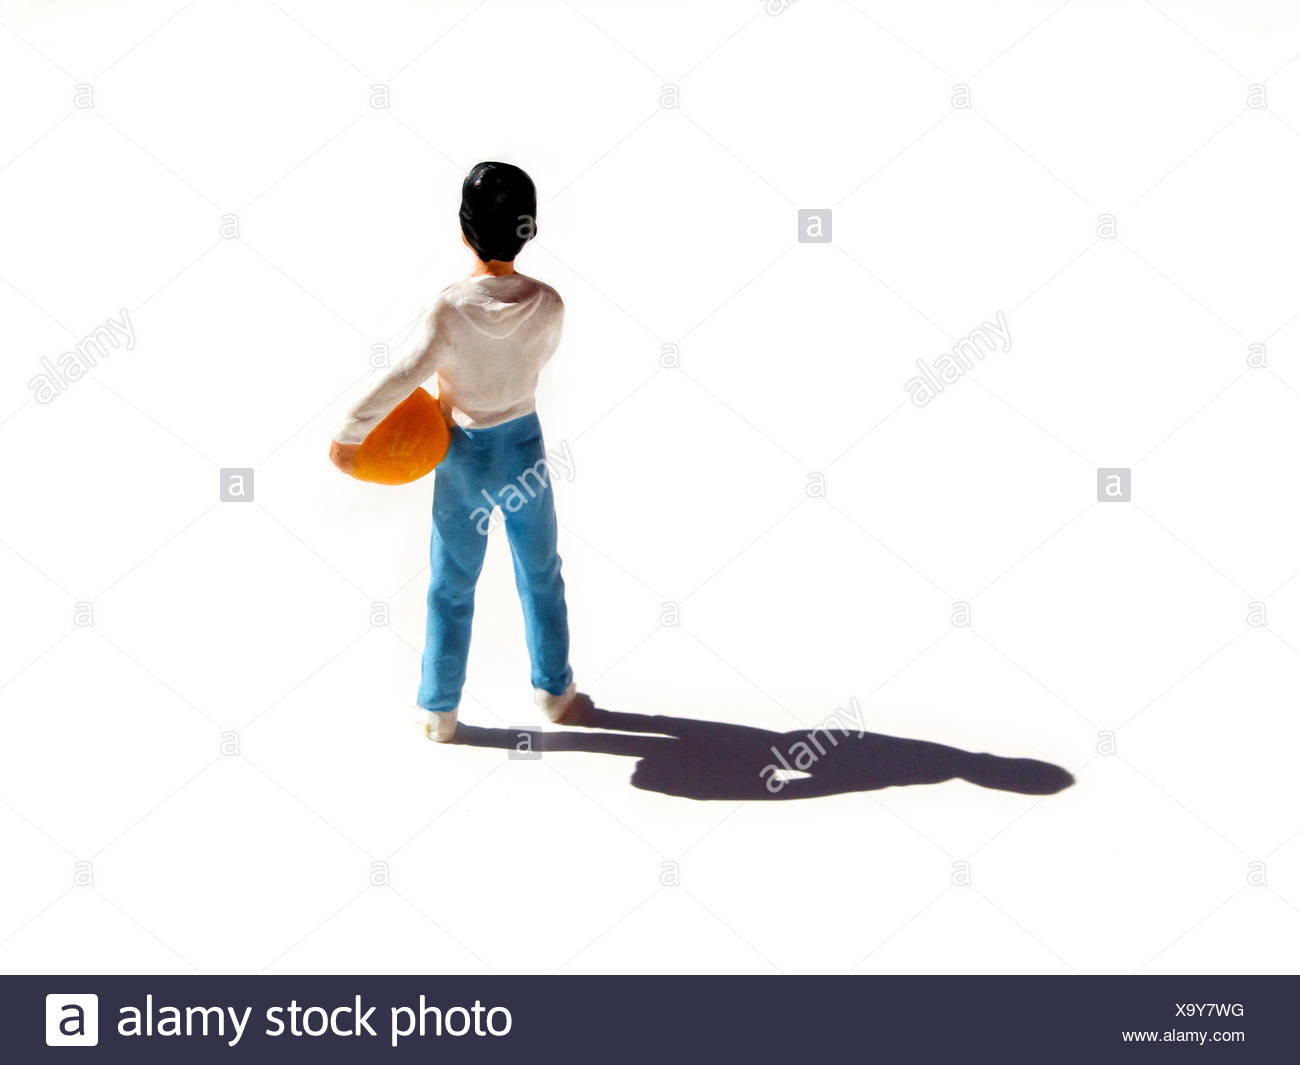 Small toy figure of child - Stock Image